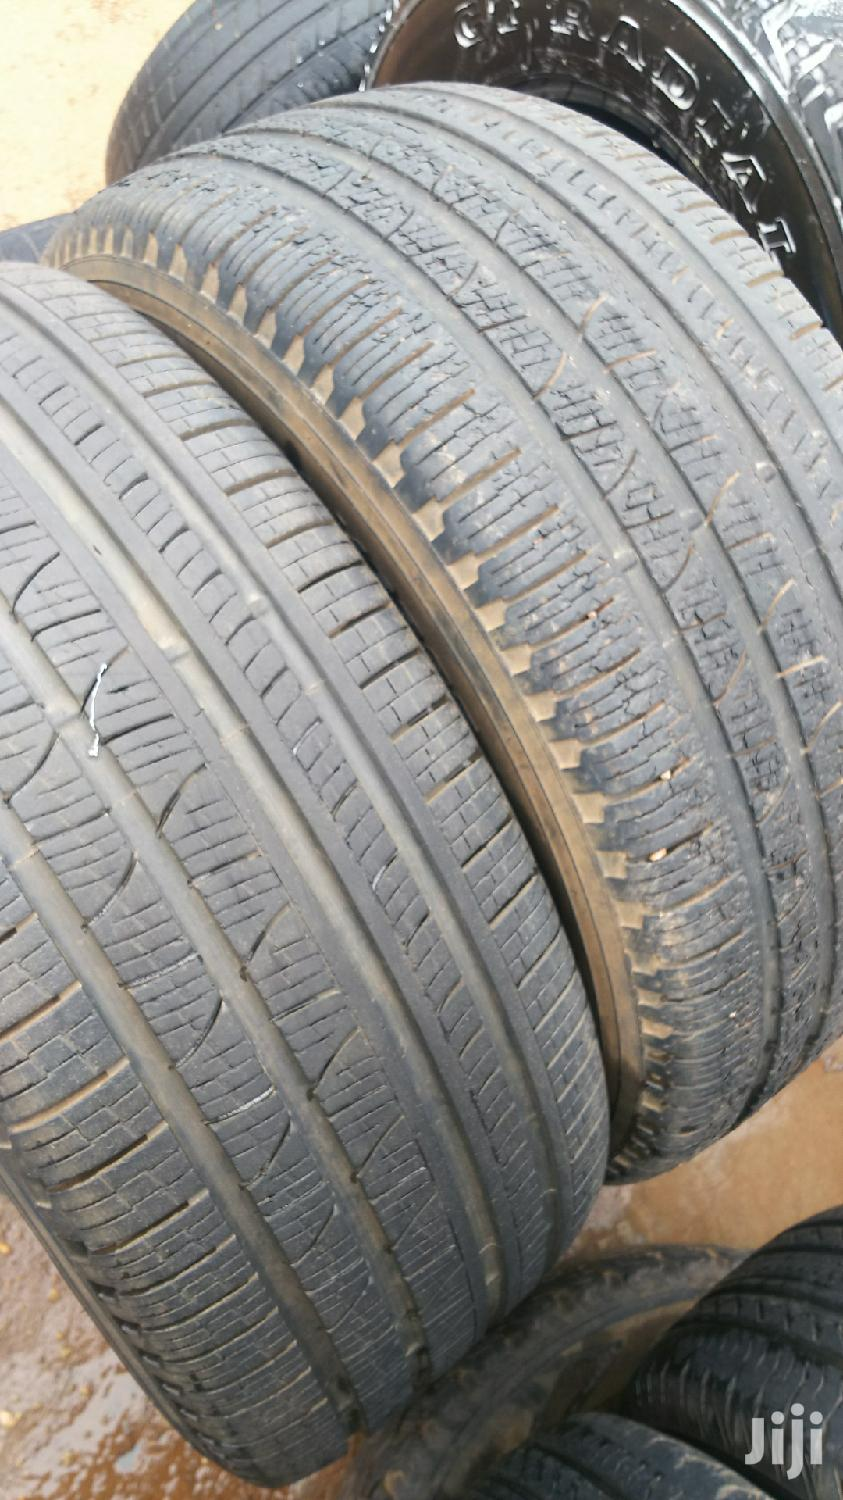 Very Cheap Used Car Tires in All Sizes